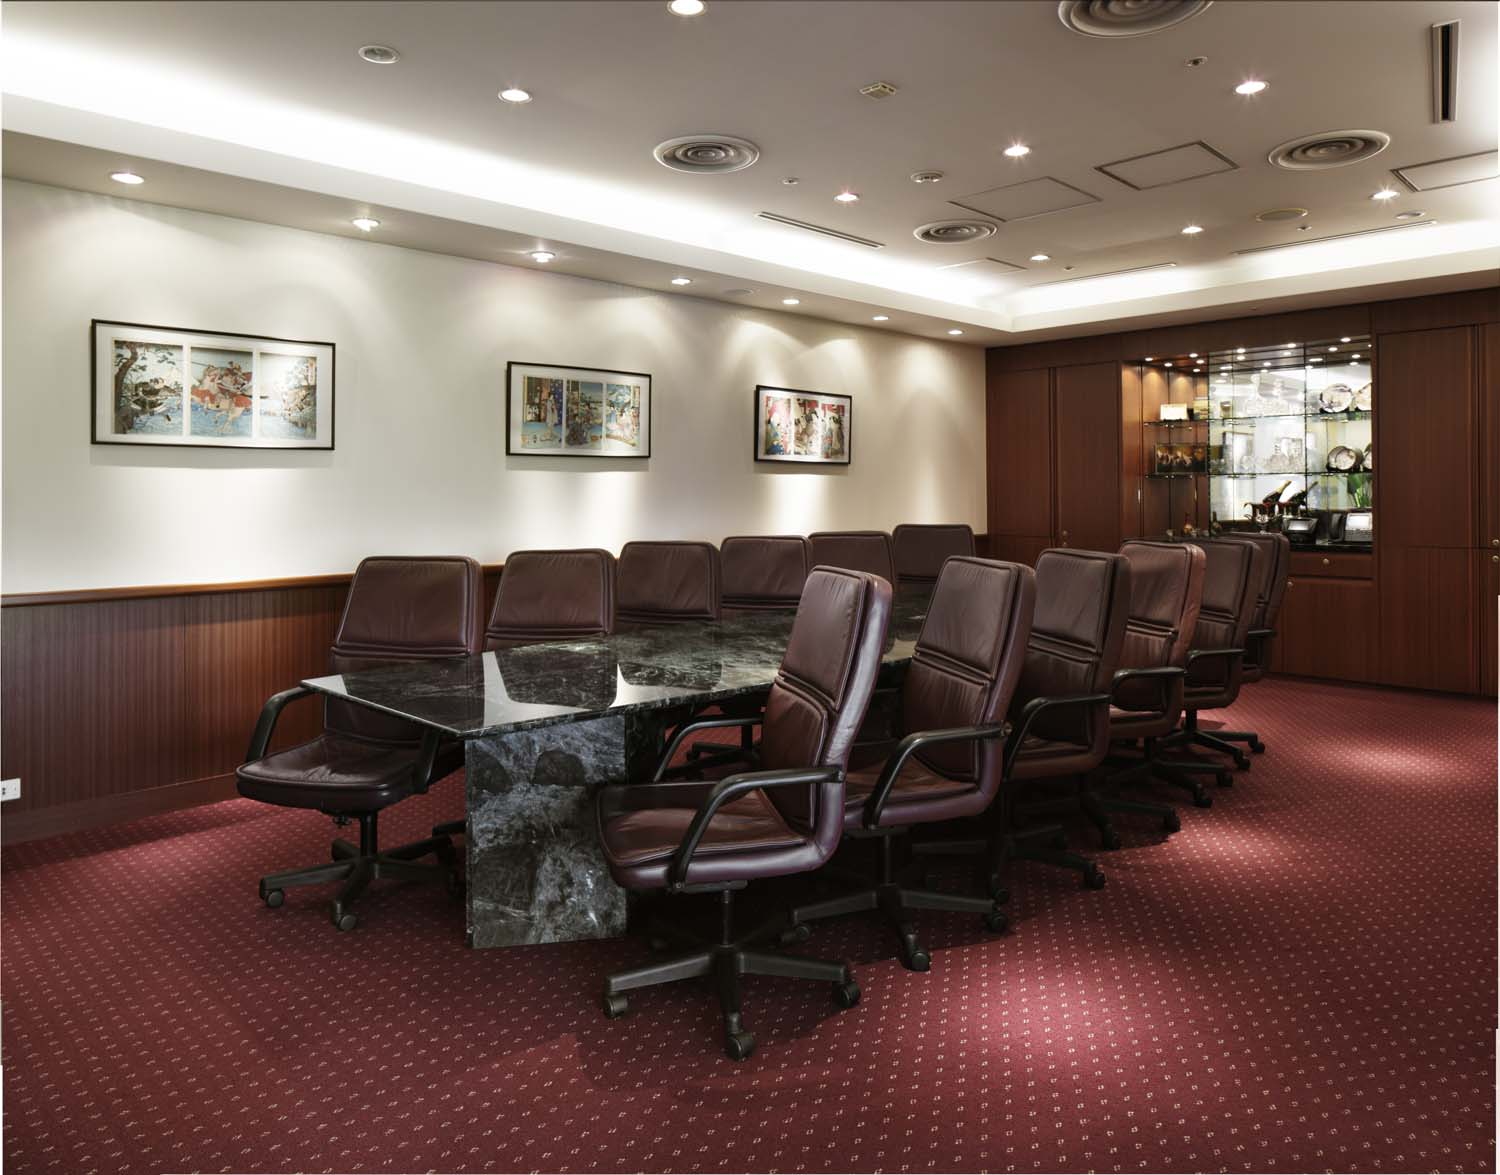 Meeting Rooms Near Tokyo Station